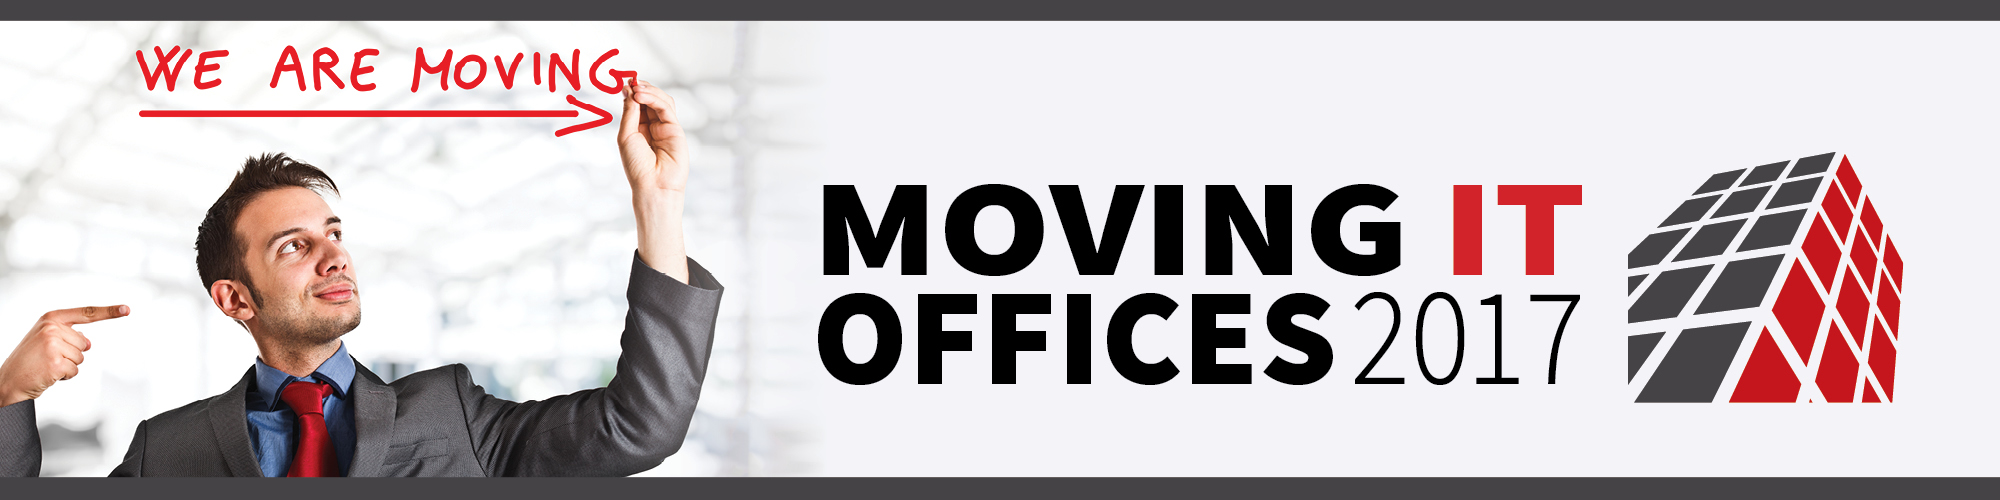 MOVING IT OFFICE 2017 banner